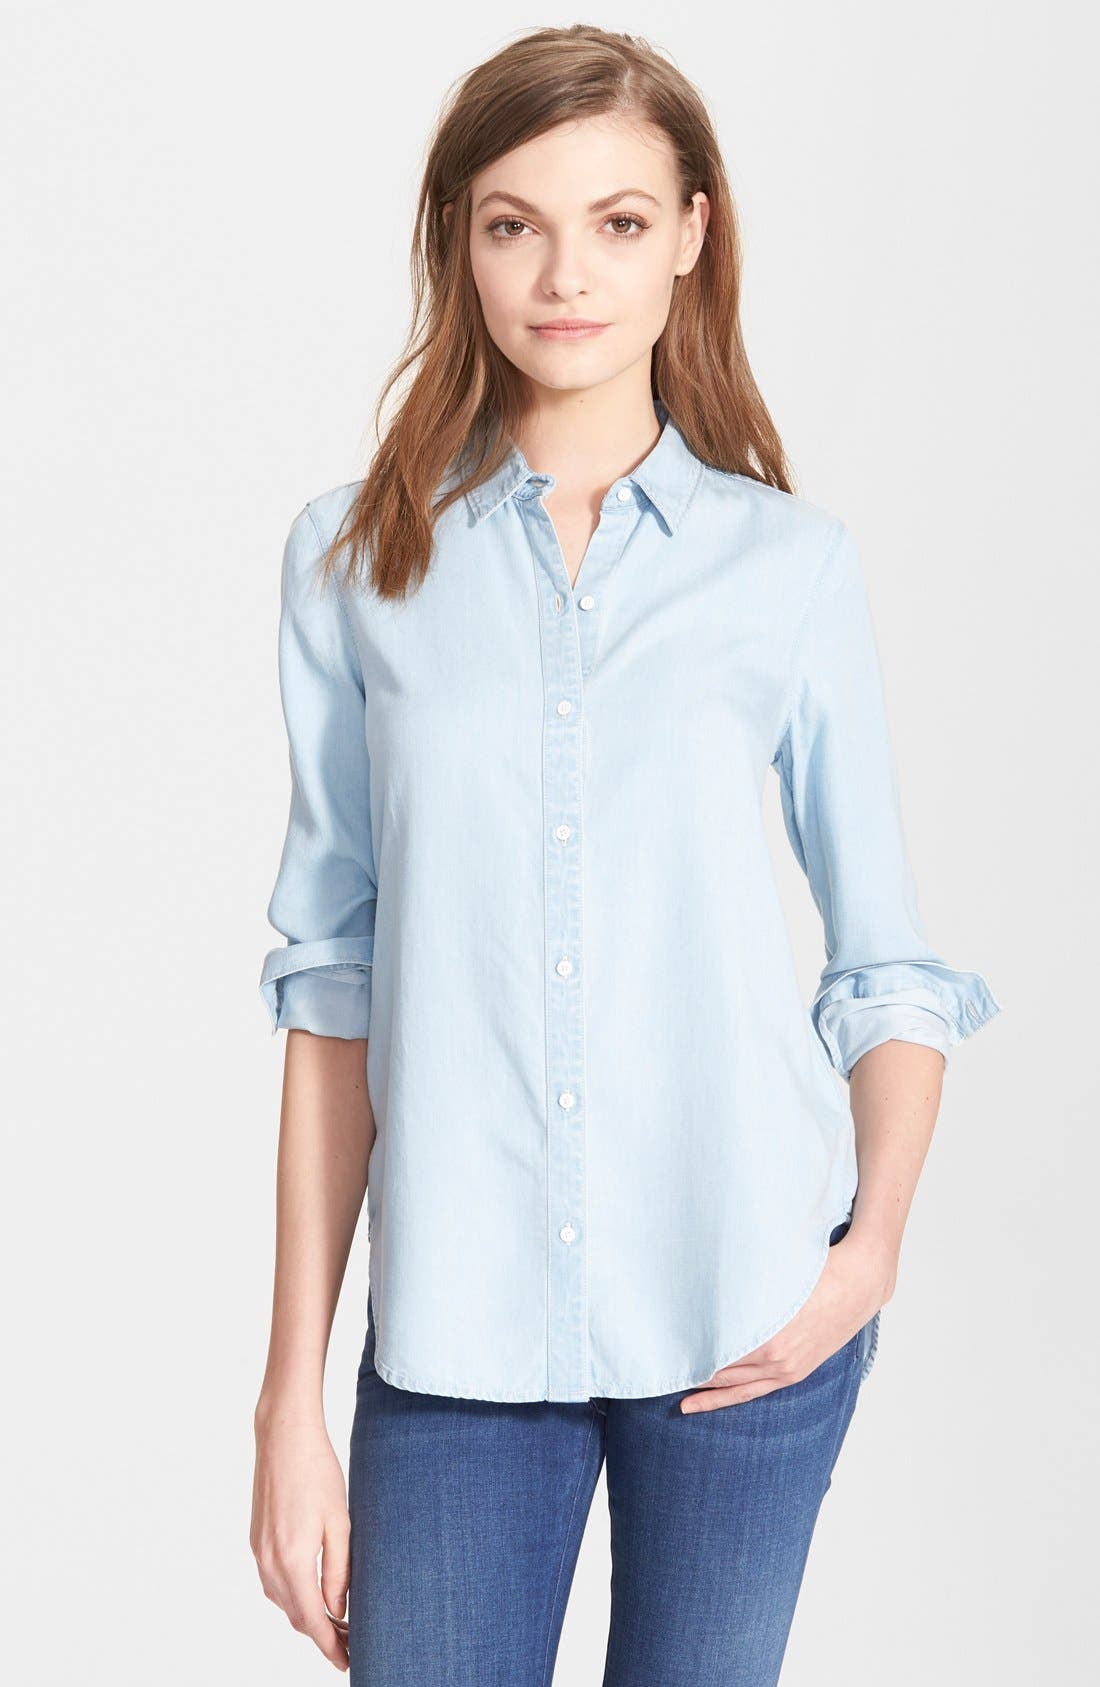 AYR 'The Clean' Shirt